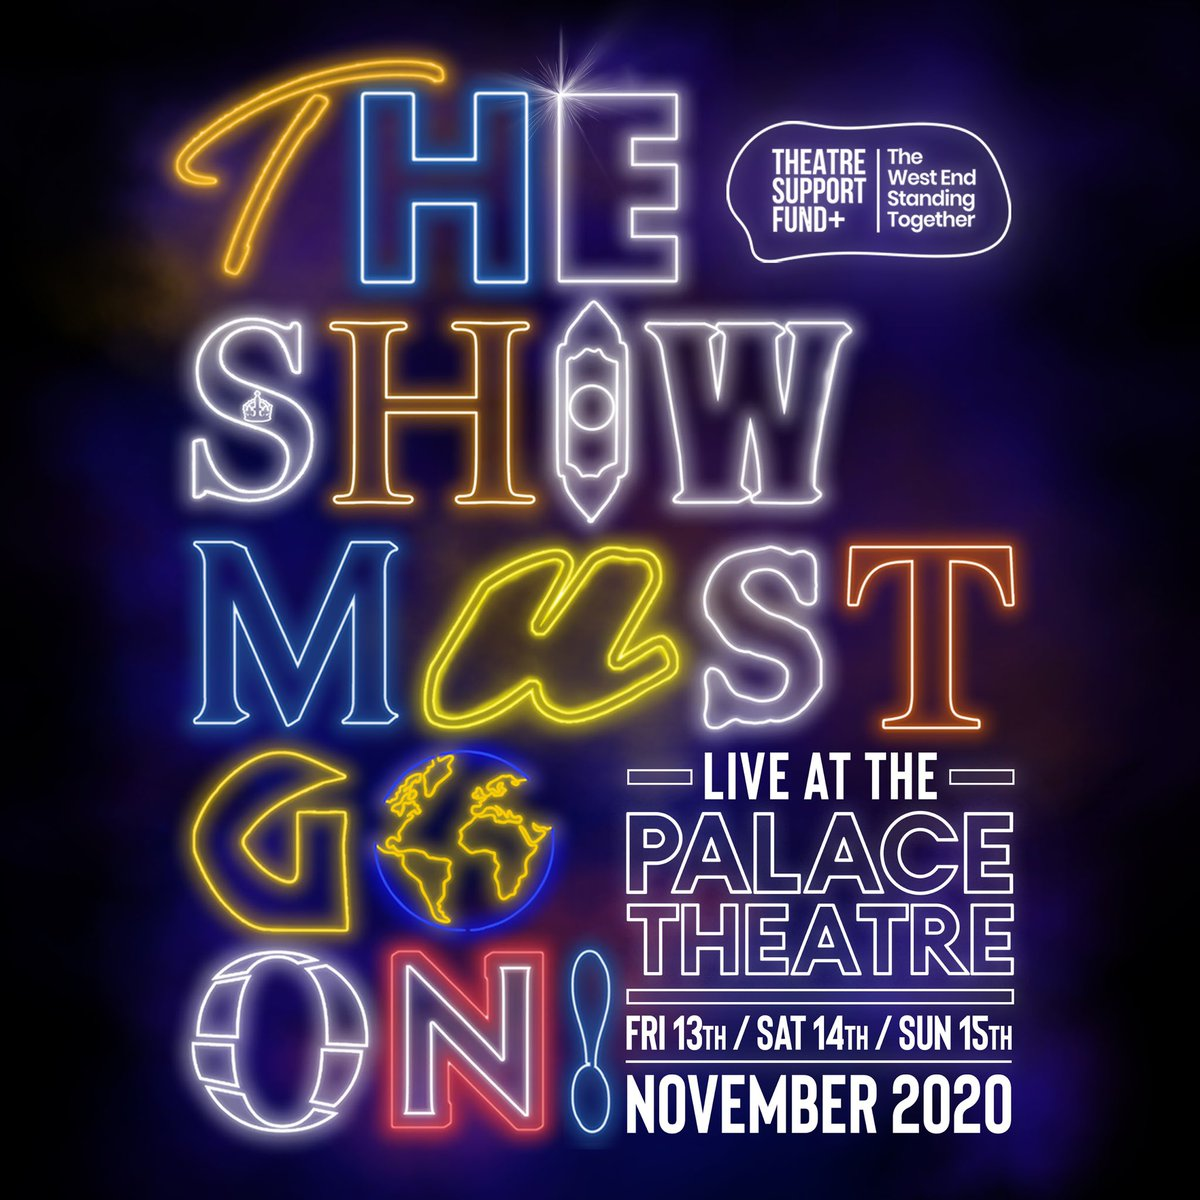 THE SHOW MUST GO ON! 🎭 LIVE AT THE PALACE THEATRE this Nov, Fri 13 – Sun 15! All profits going to Acting for Others and #fleabagforcharity     #theshowmustgoon #thewestendstandingtogether #liveathepalace